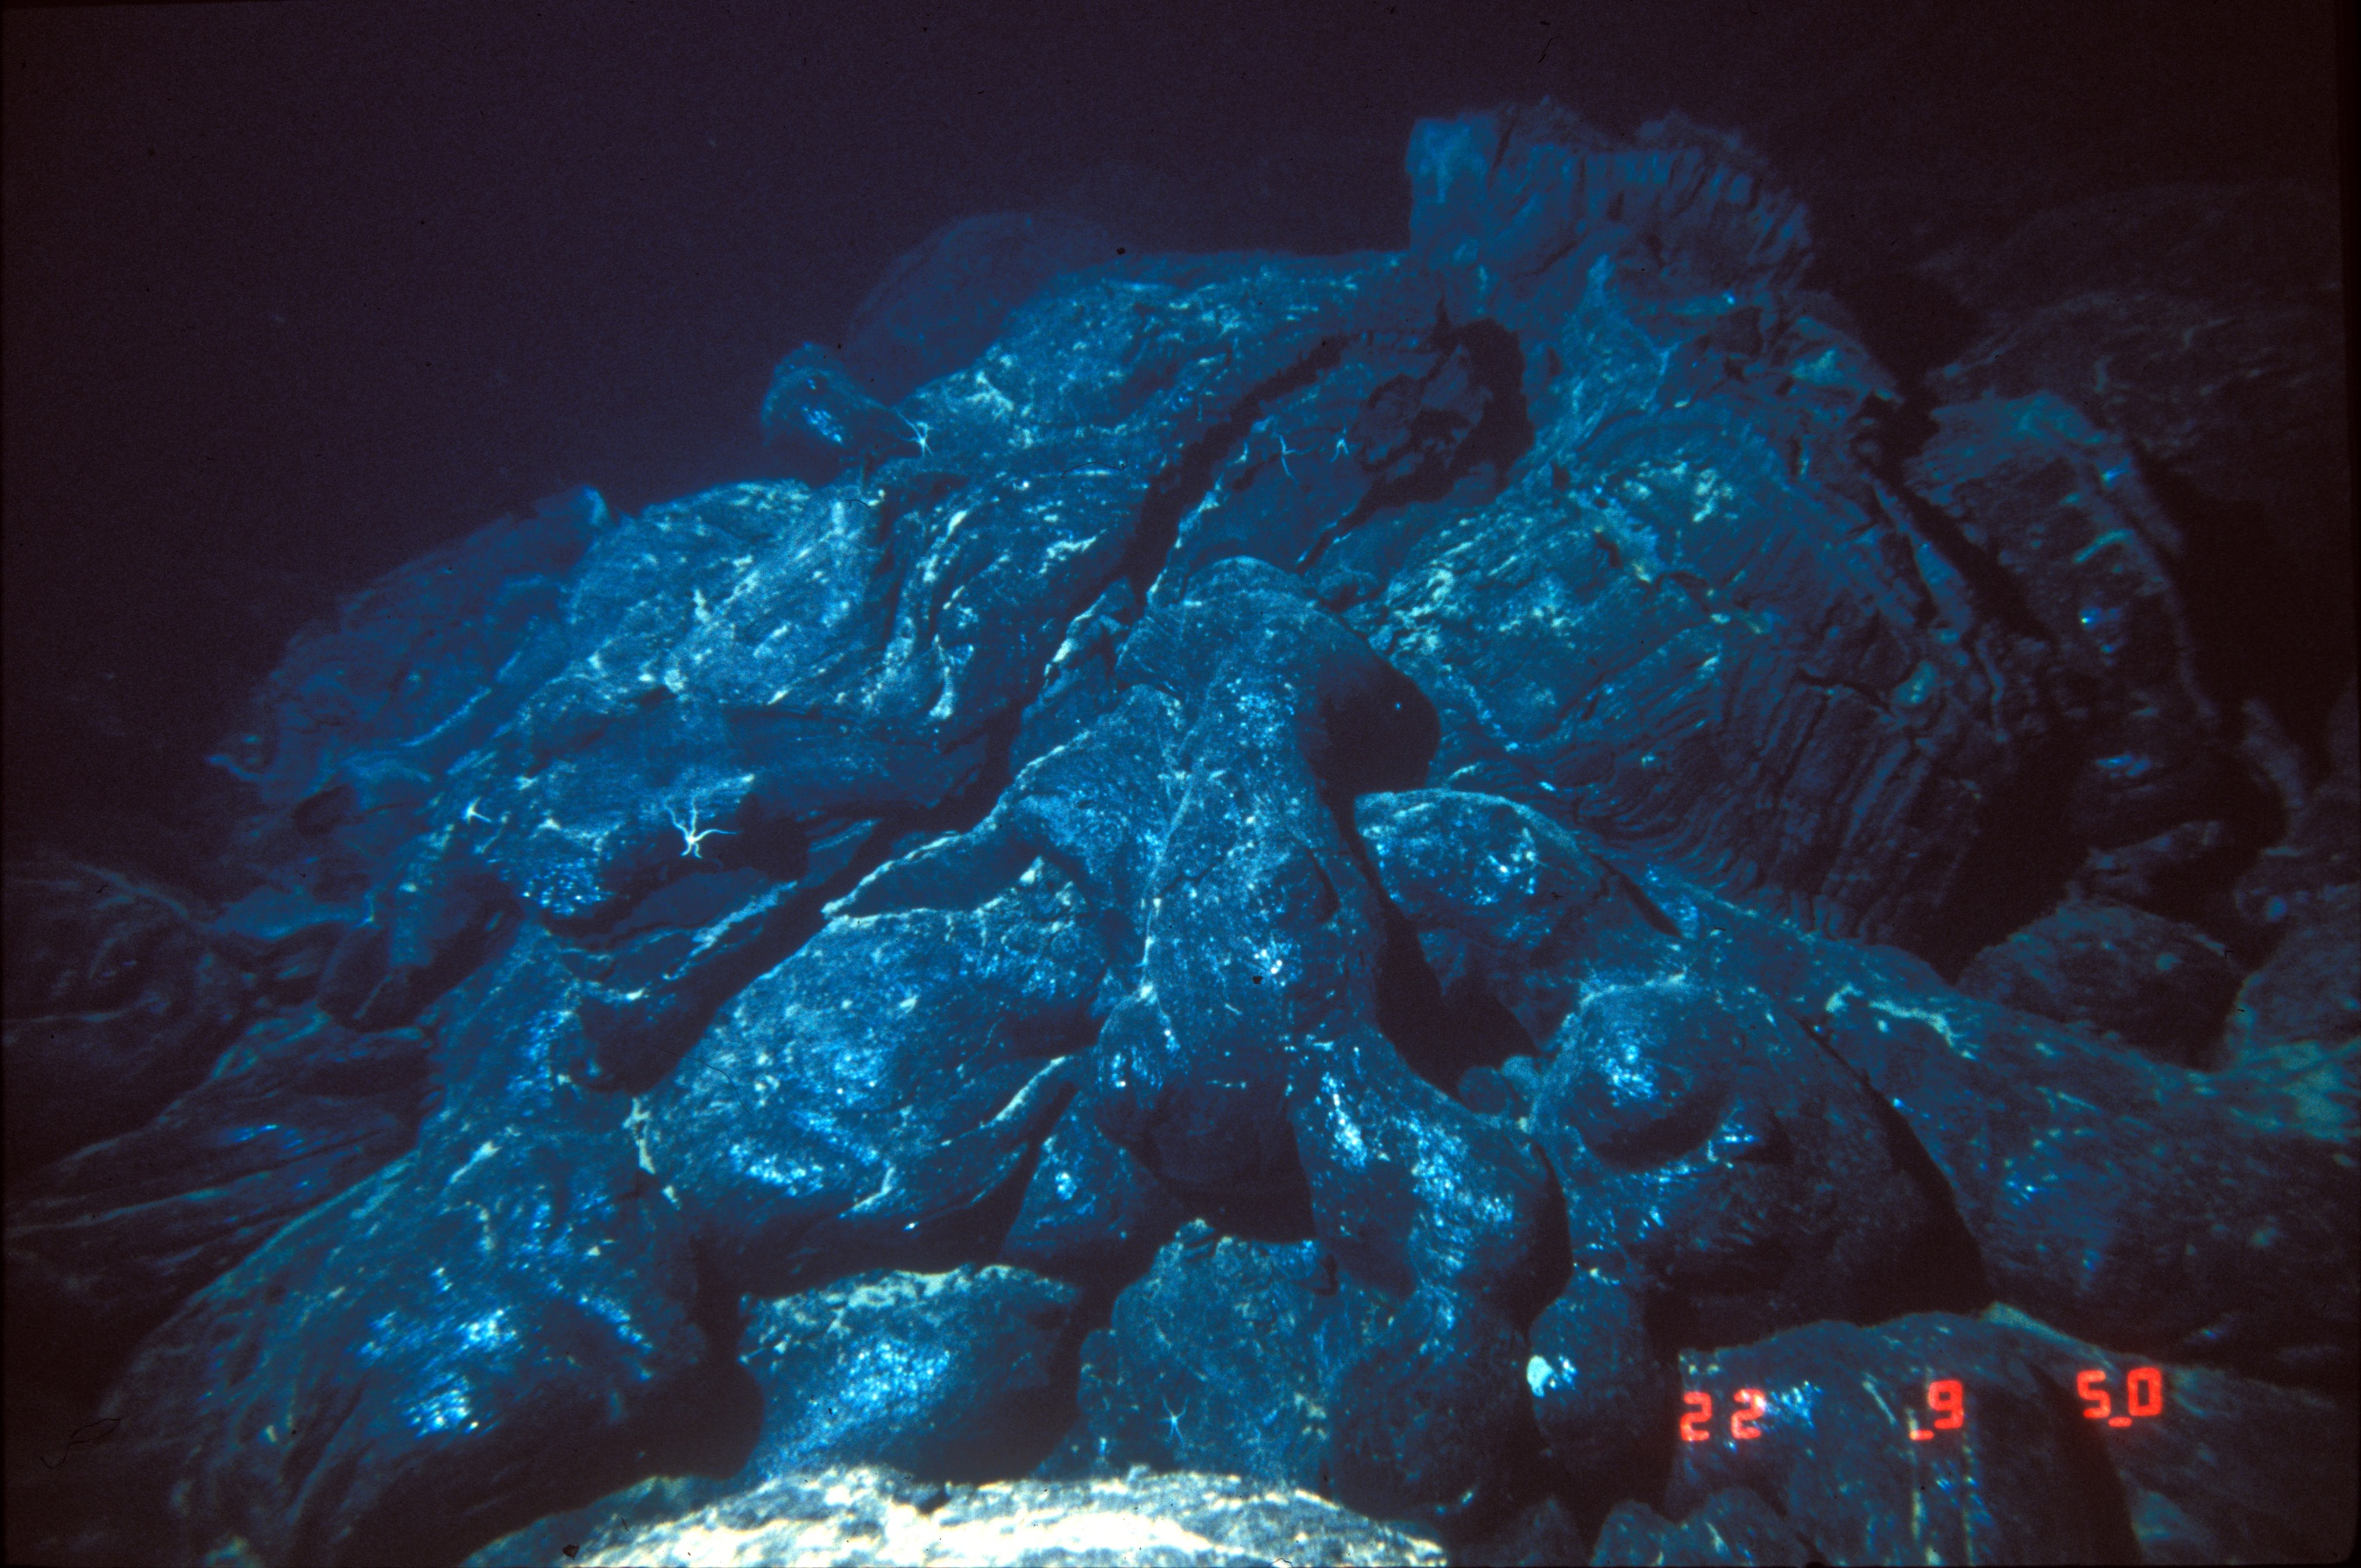 File:Nur05028 - pile of pillow lava.jpg - Wikimedia Commons